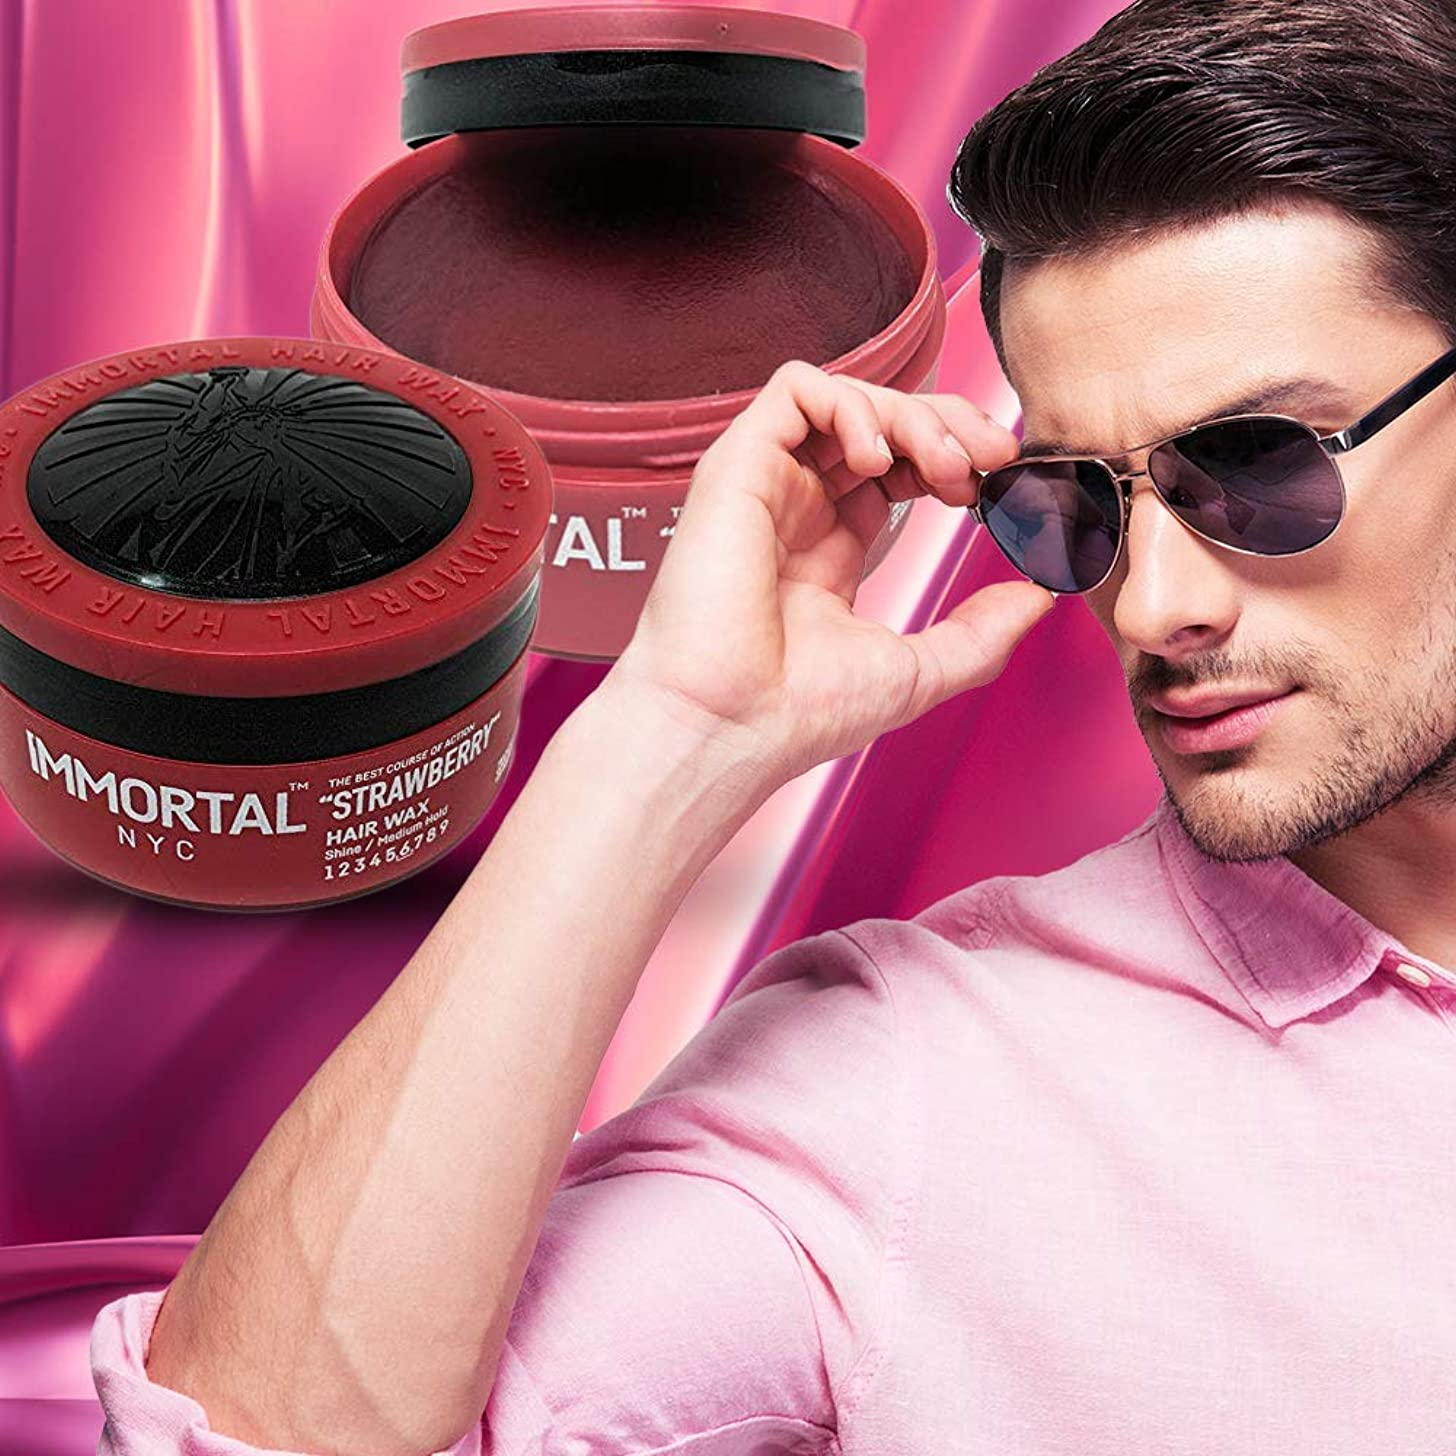 Immortal NYC Strawberry Scented Hair Wax for Men